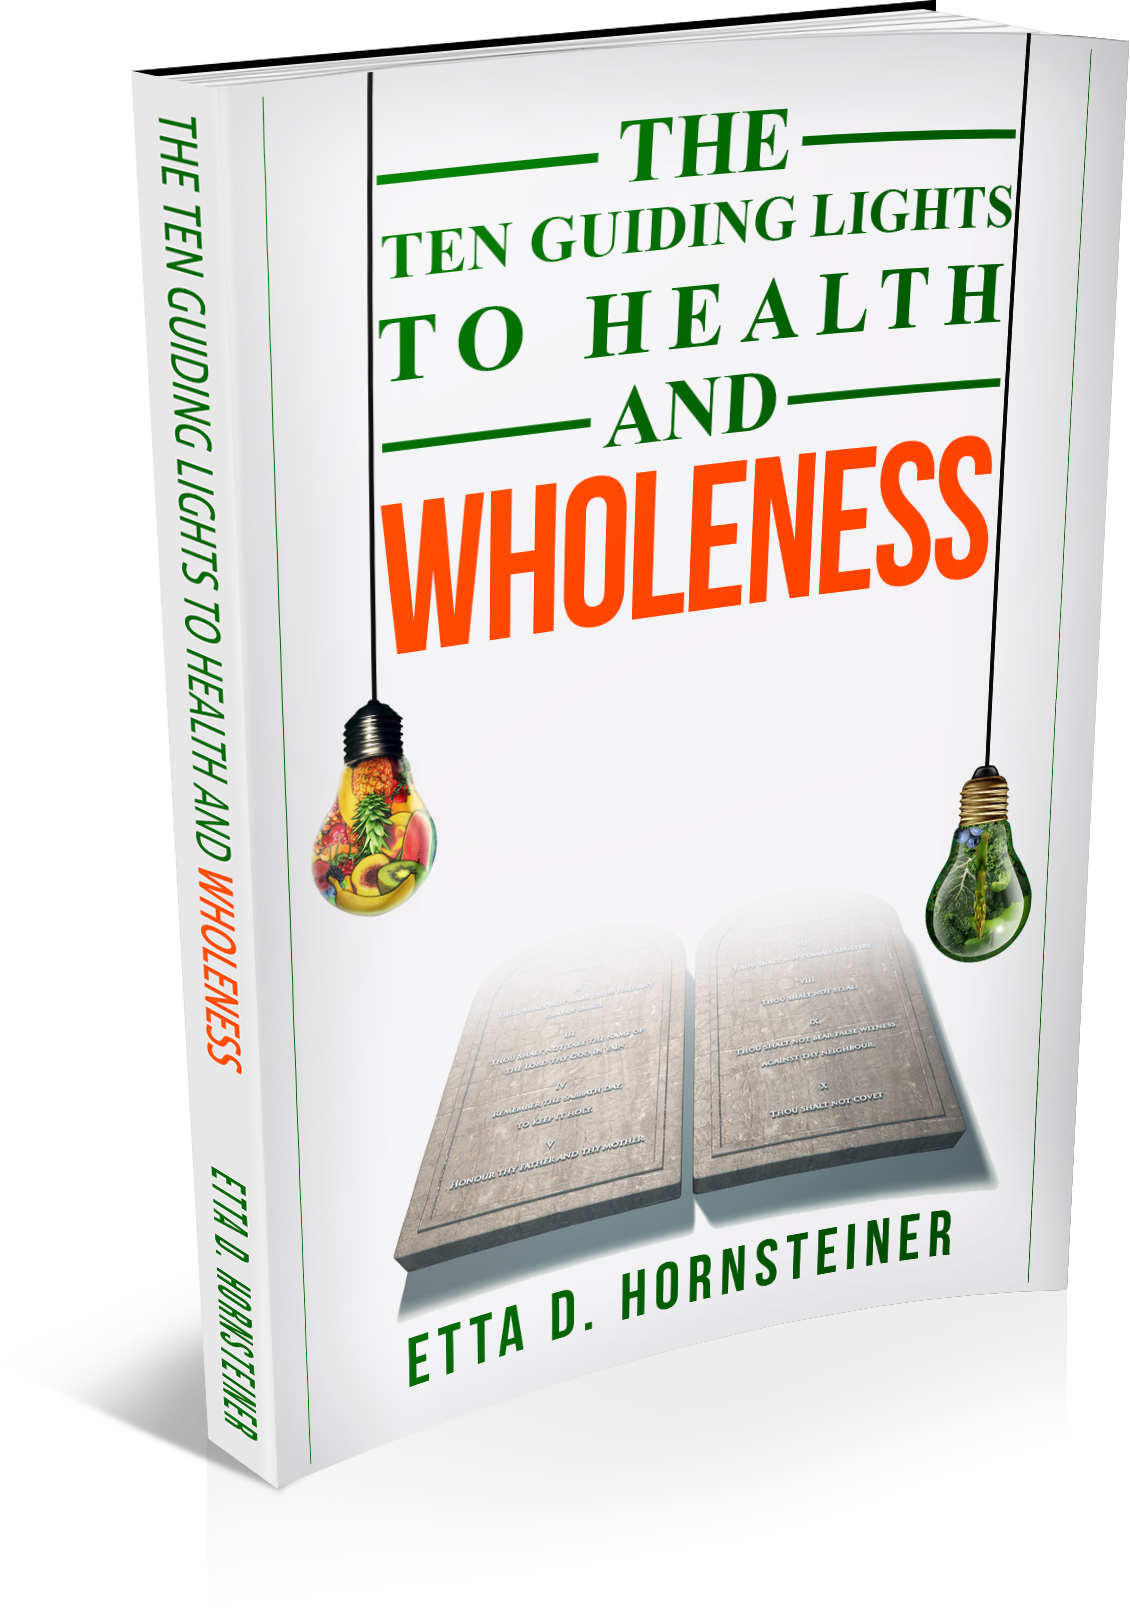 The Guiding Light to Health and Wholeness